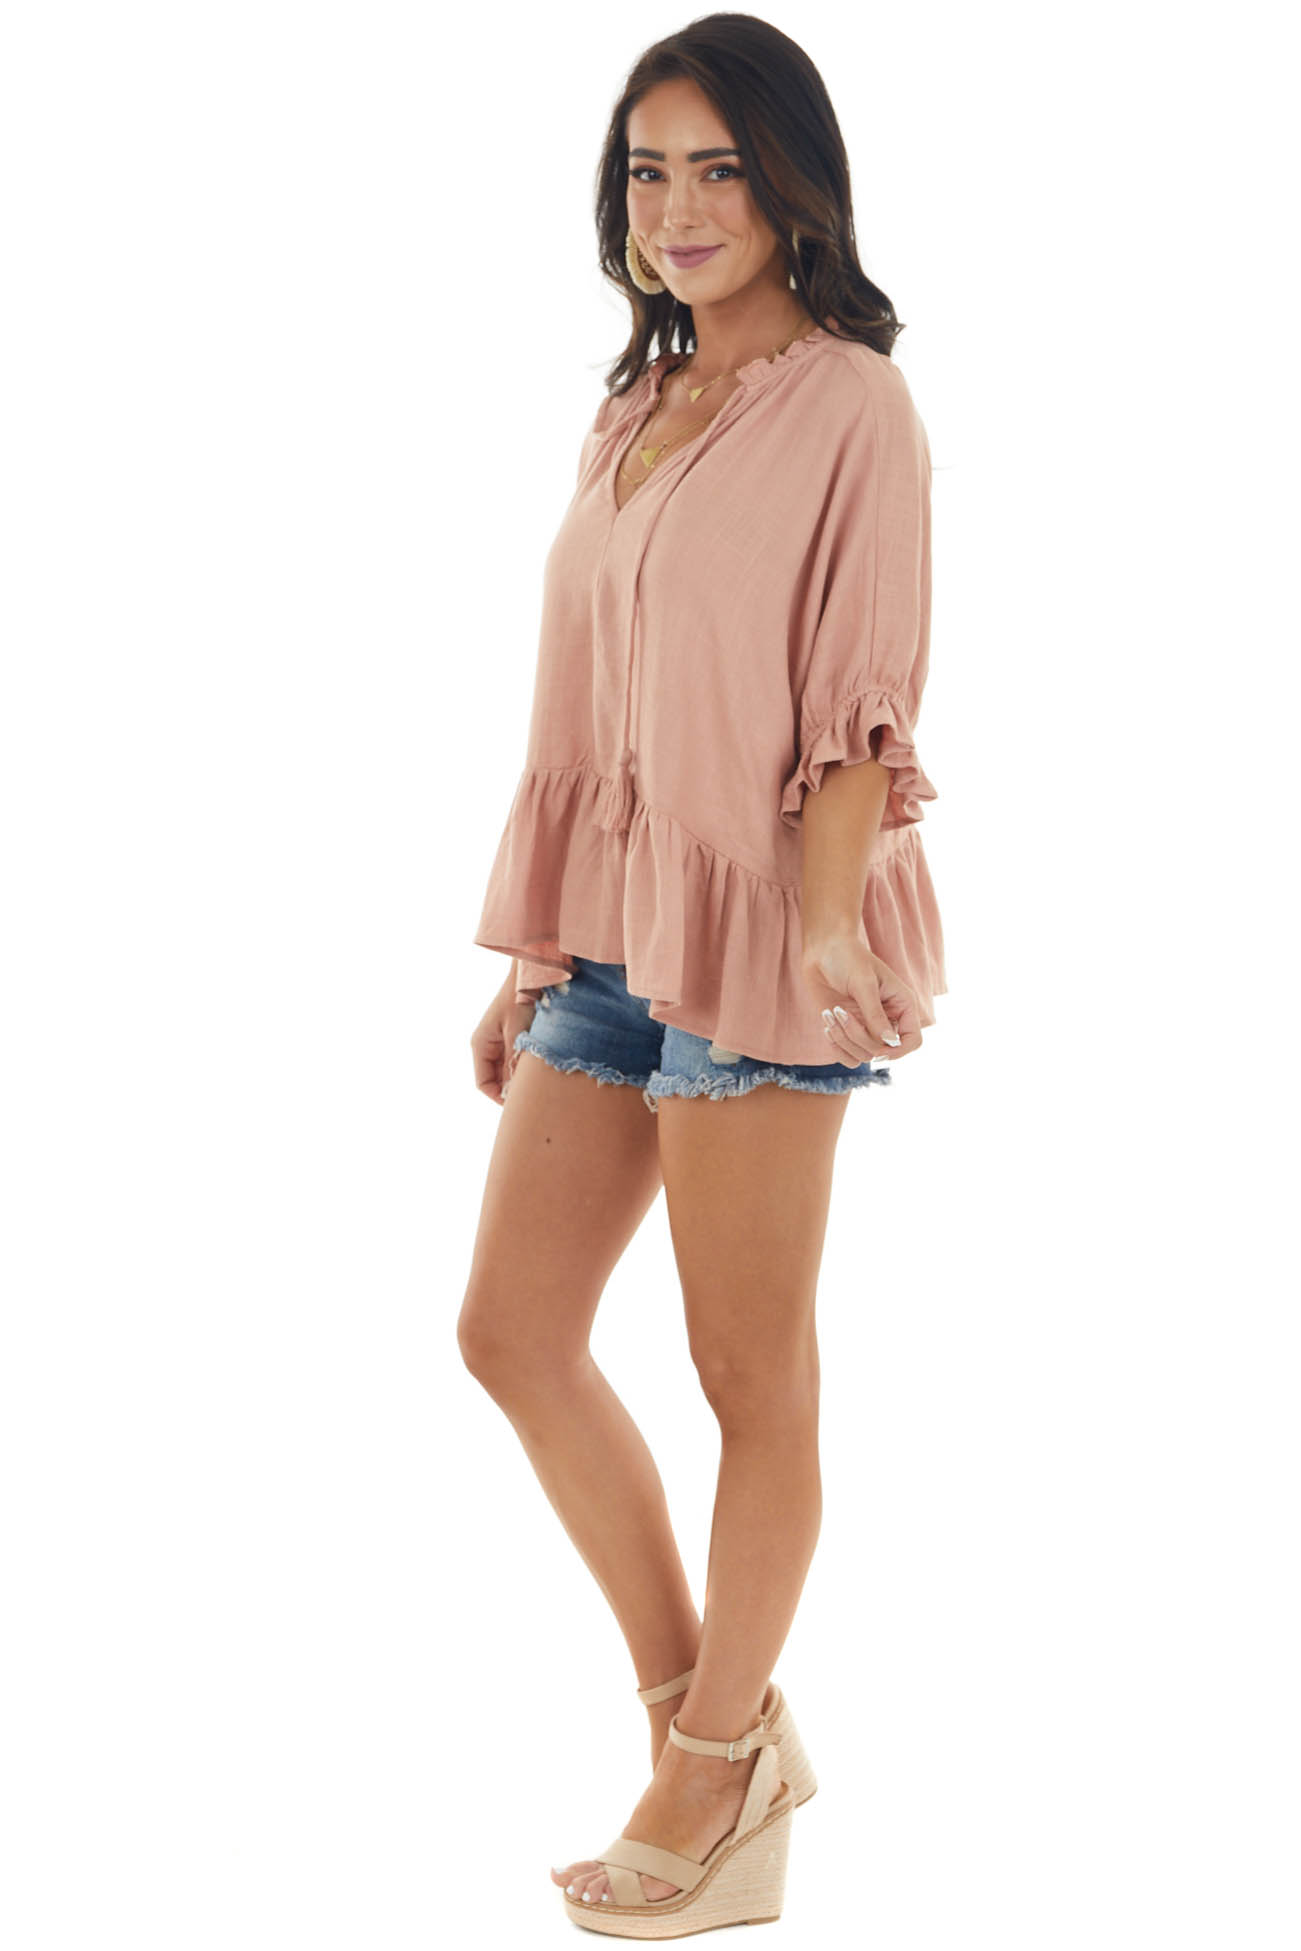 Dusty Melon Textured Blouse with Ruffle Details and Neck Tie